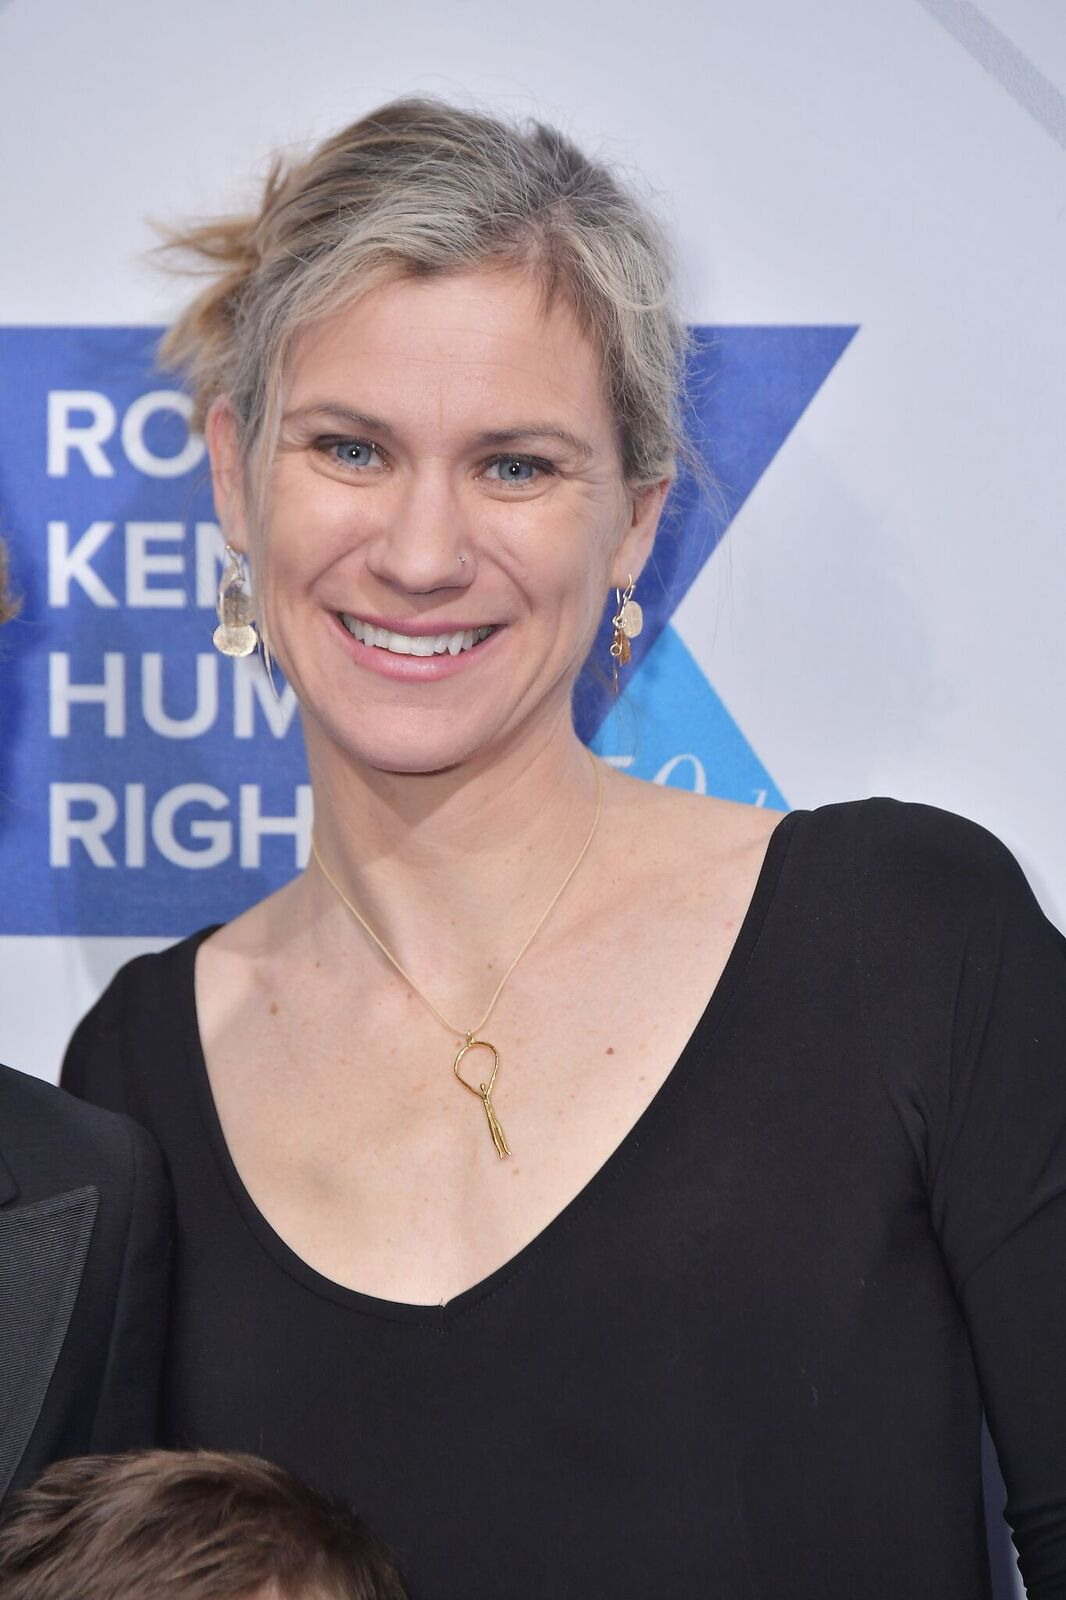 Maeve McKean atthe Robert F. Kennedy Human Rights Ripple Of Hope Awards on December 12, 2018, in New York City | Photo:Michael Loccisano/Getty Images